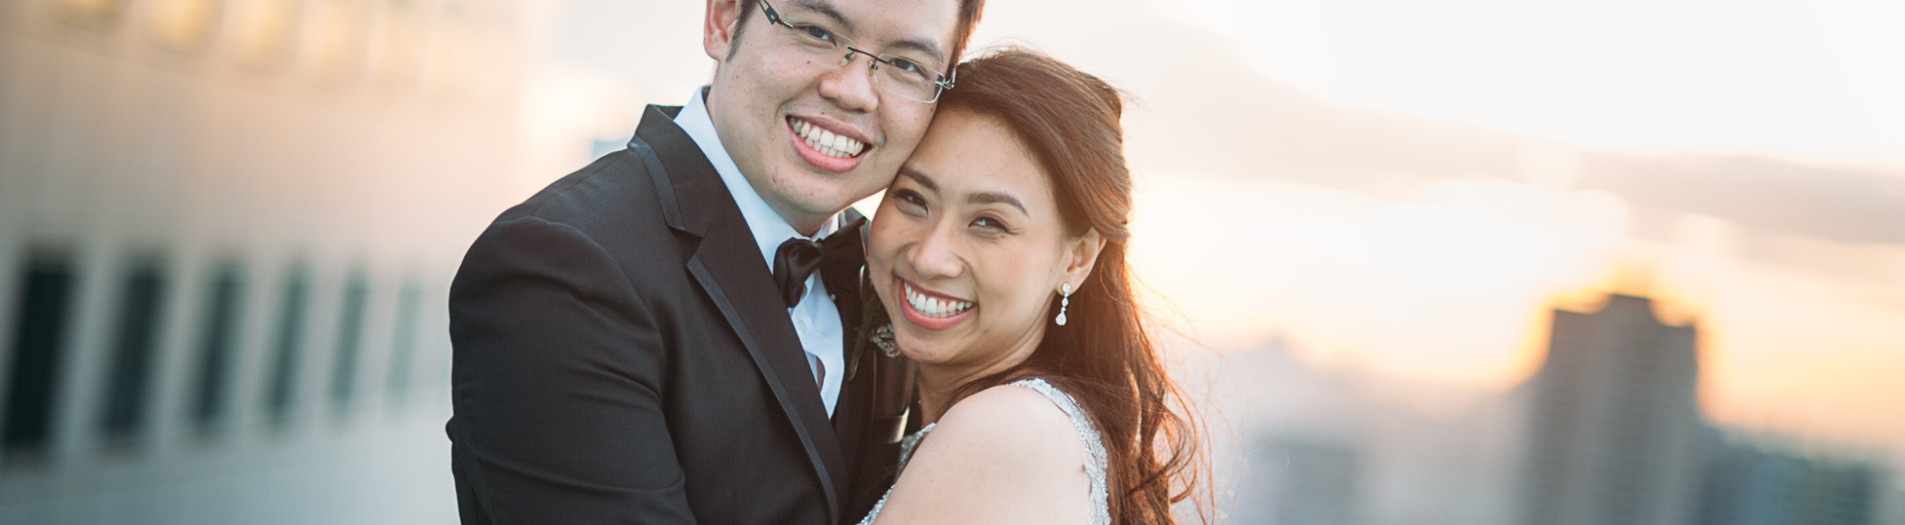 Dem and Kyra's Wedding - God's Perfect Timing